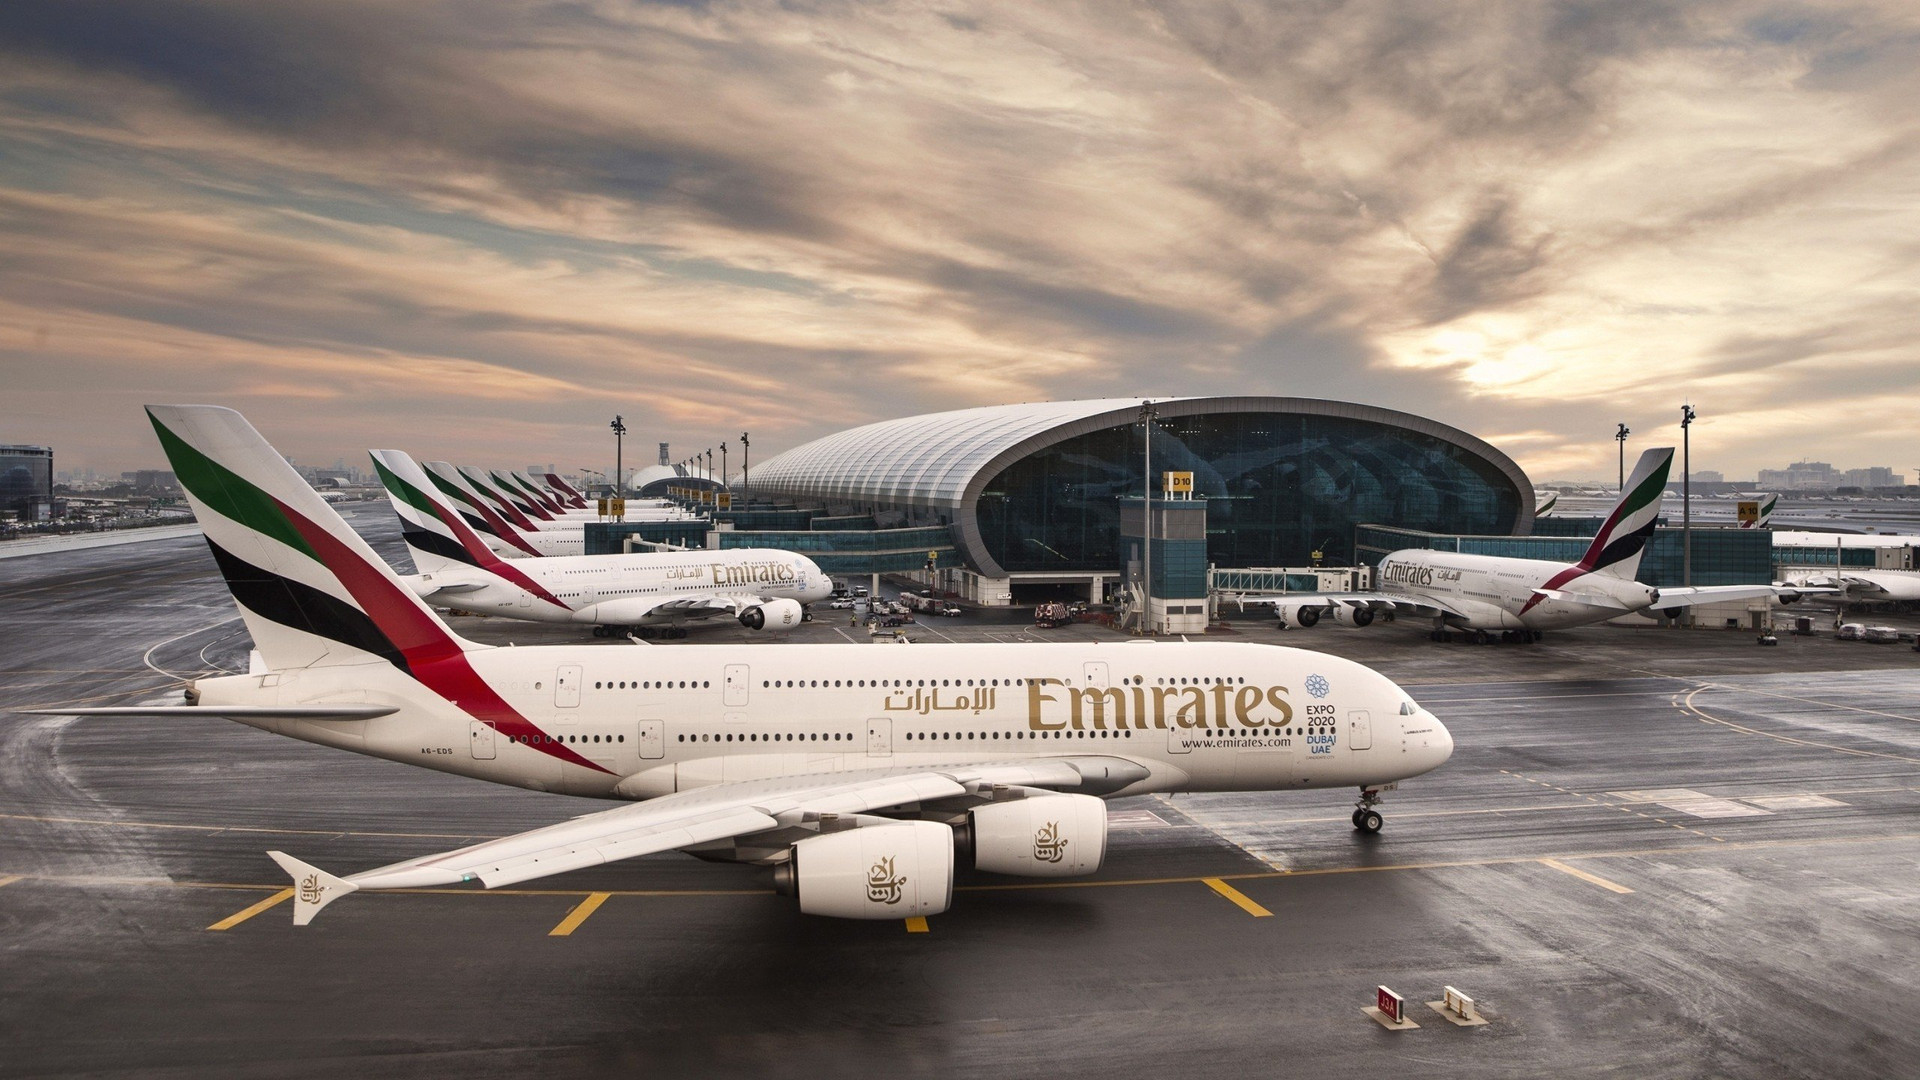 2560x1440-px-A380-Airbus-aircraft-airpla